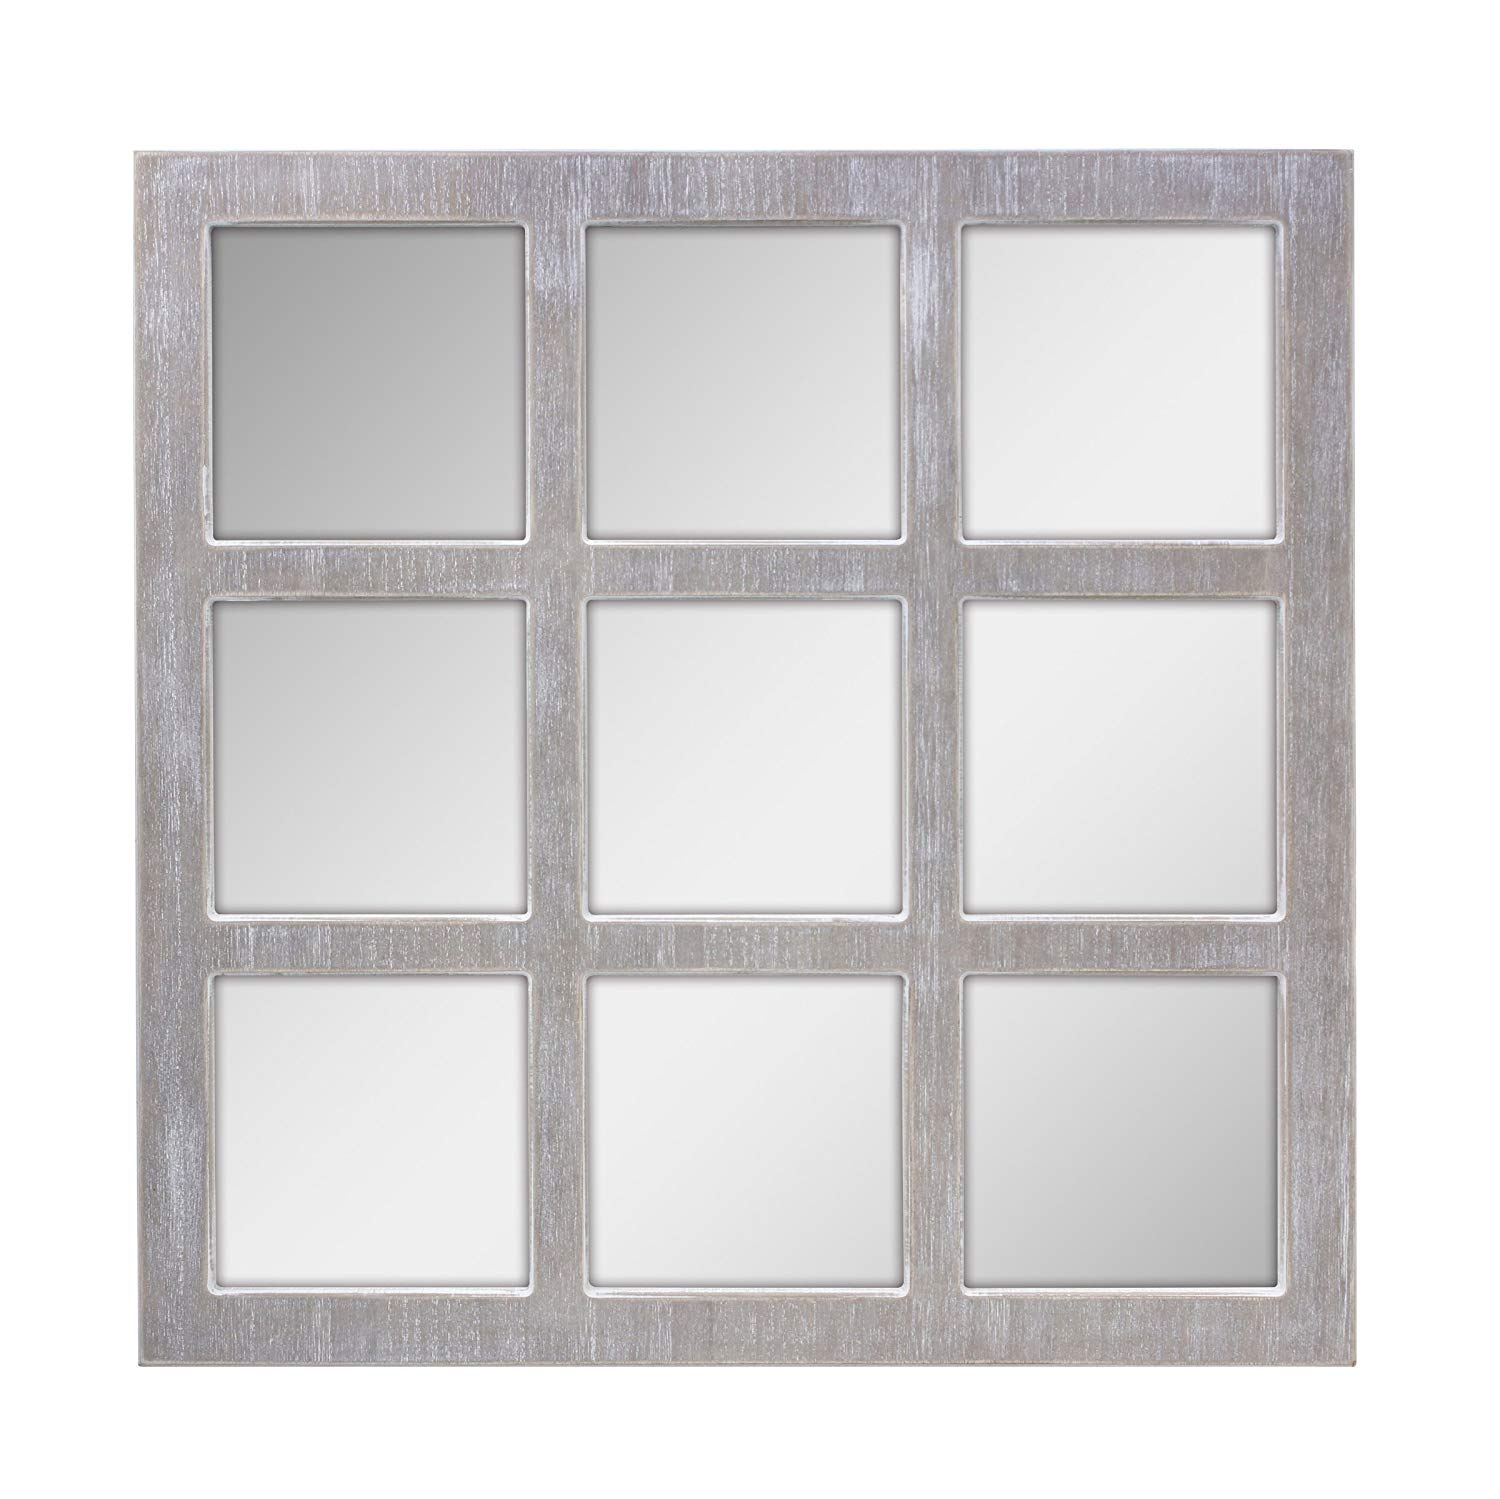 Buy The French Country Style Rustic Window Mirror With